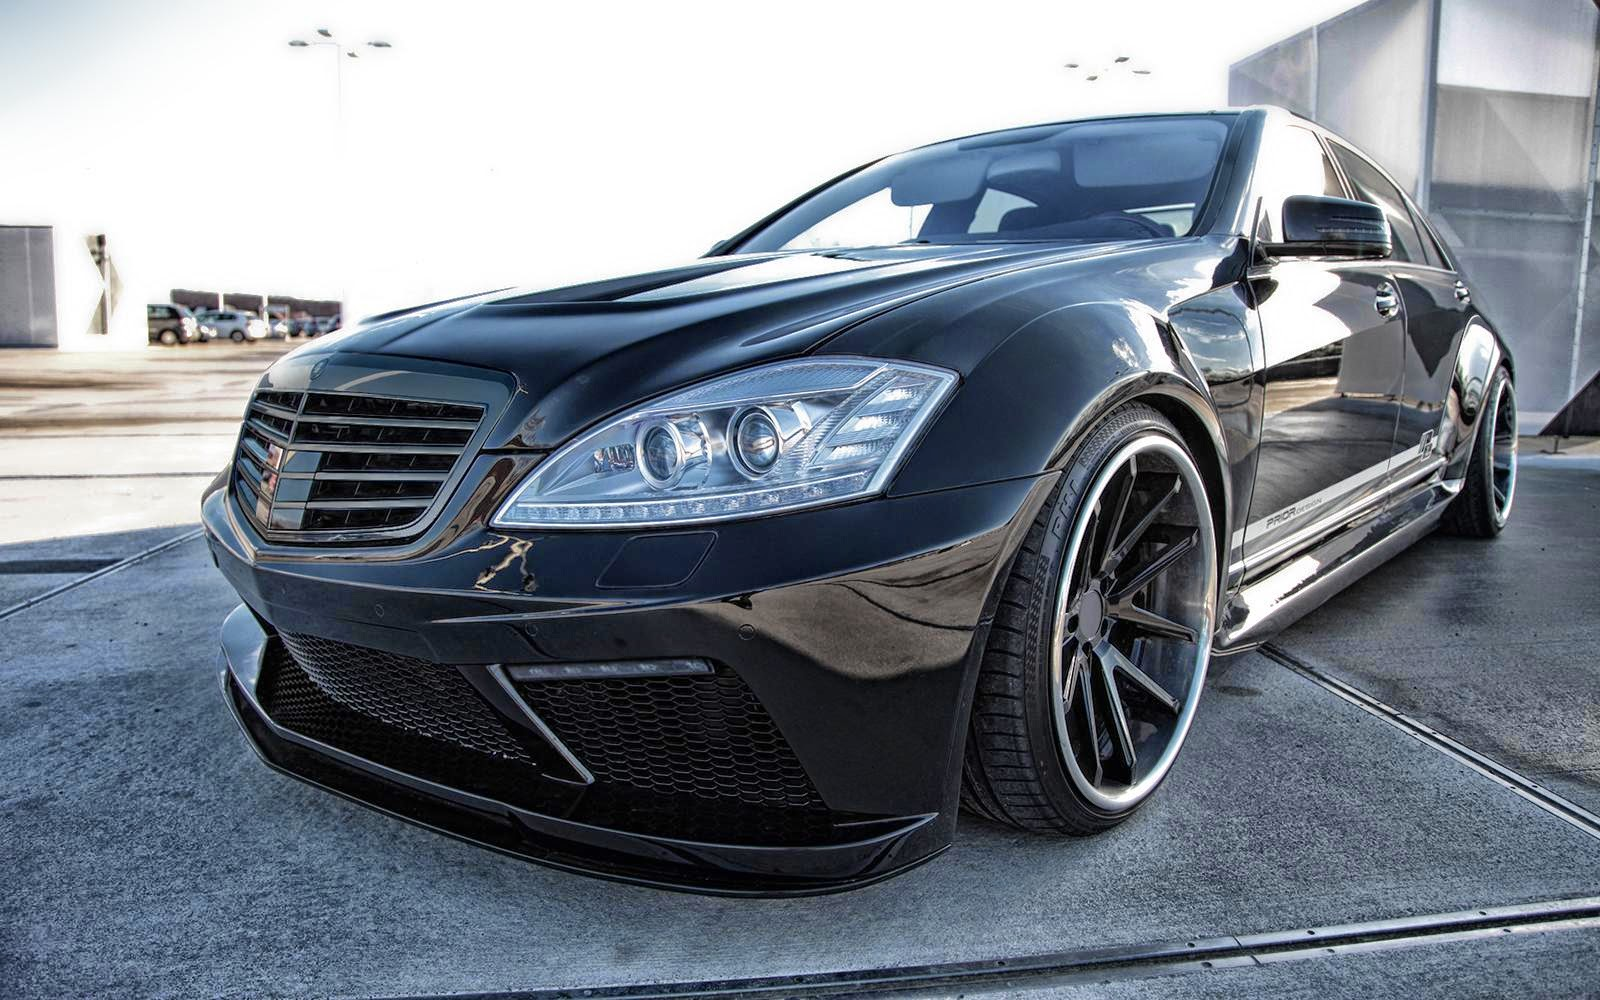 572429 What Color as well 250044 Lorinser Trunk Roof Spoiler as well Brabus Sv12r in addition W221 Vip Body Kit Style Prior Design together with Mercedes Cls 550 Amg Turned Hideous Car. on 2010 mercedes s550 coupe